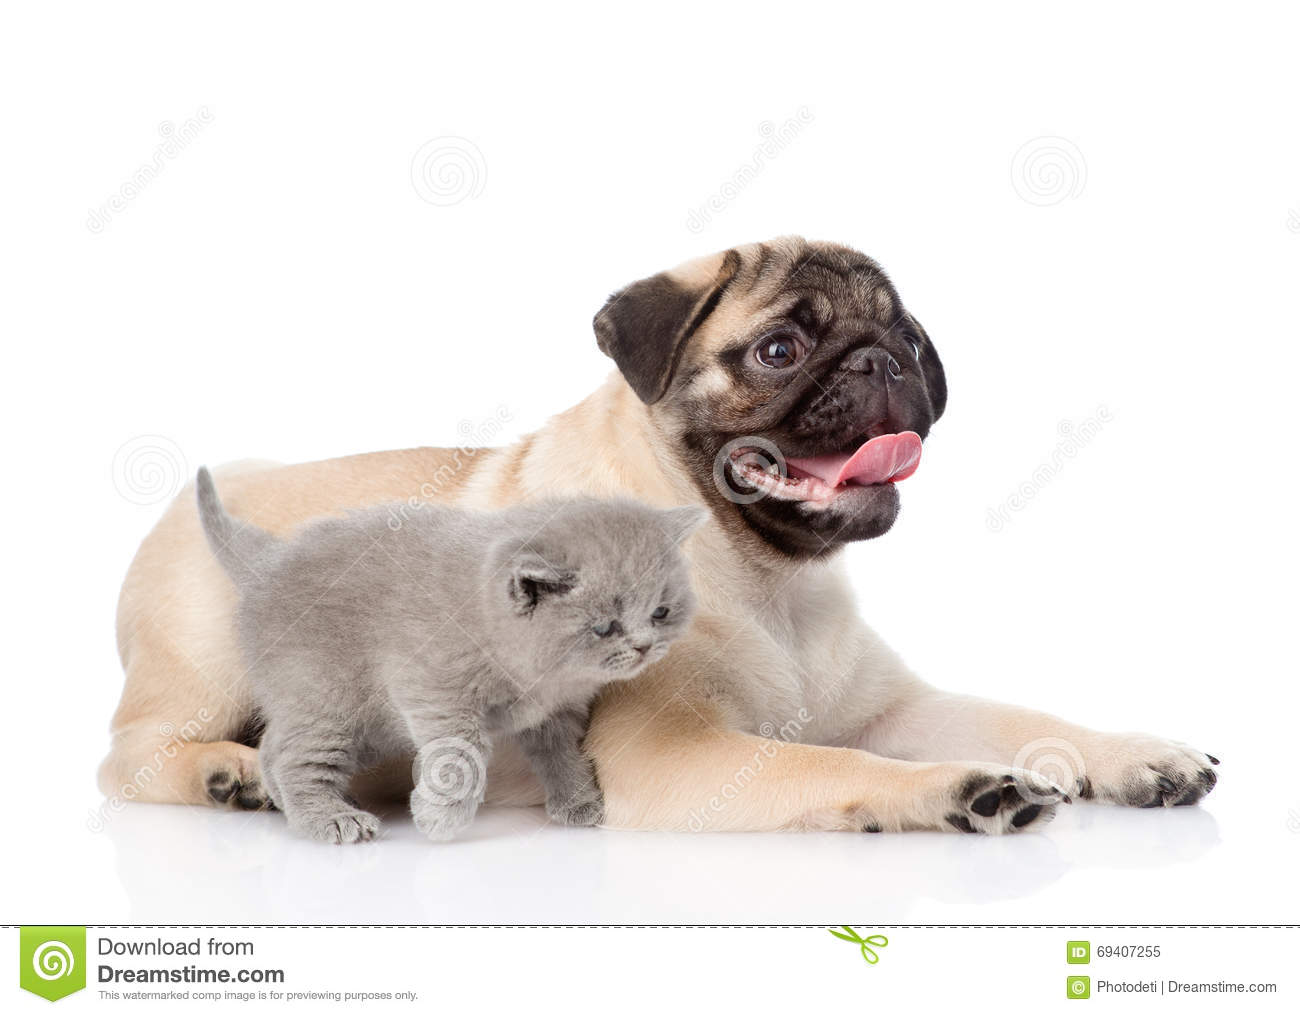 Scottish Cat And Pug Puppy Together Isolated On White Background